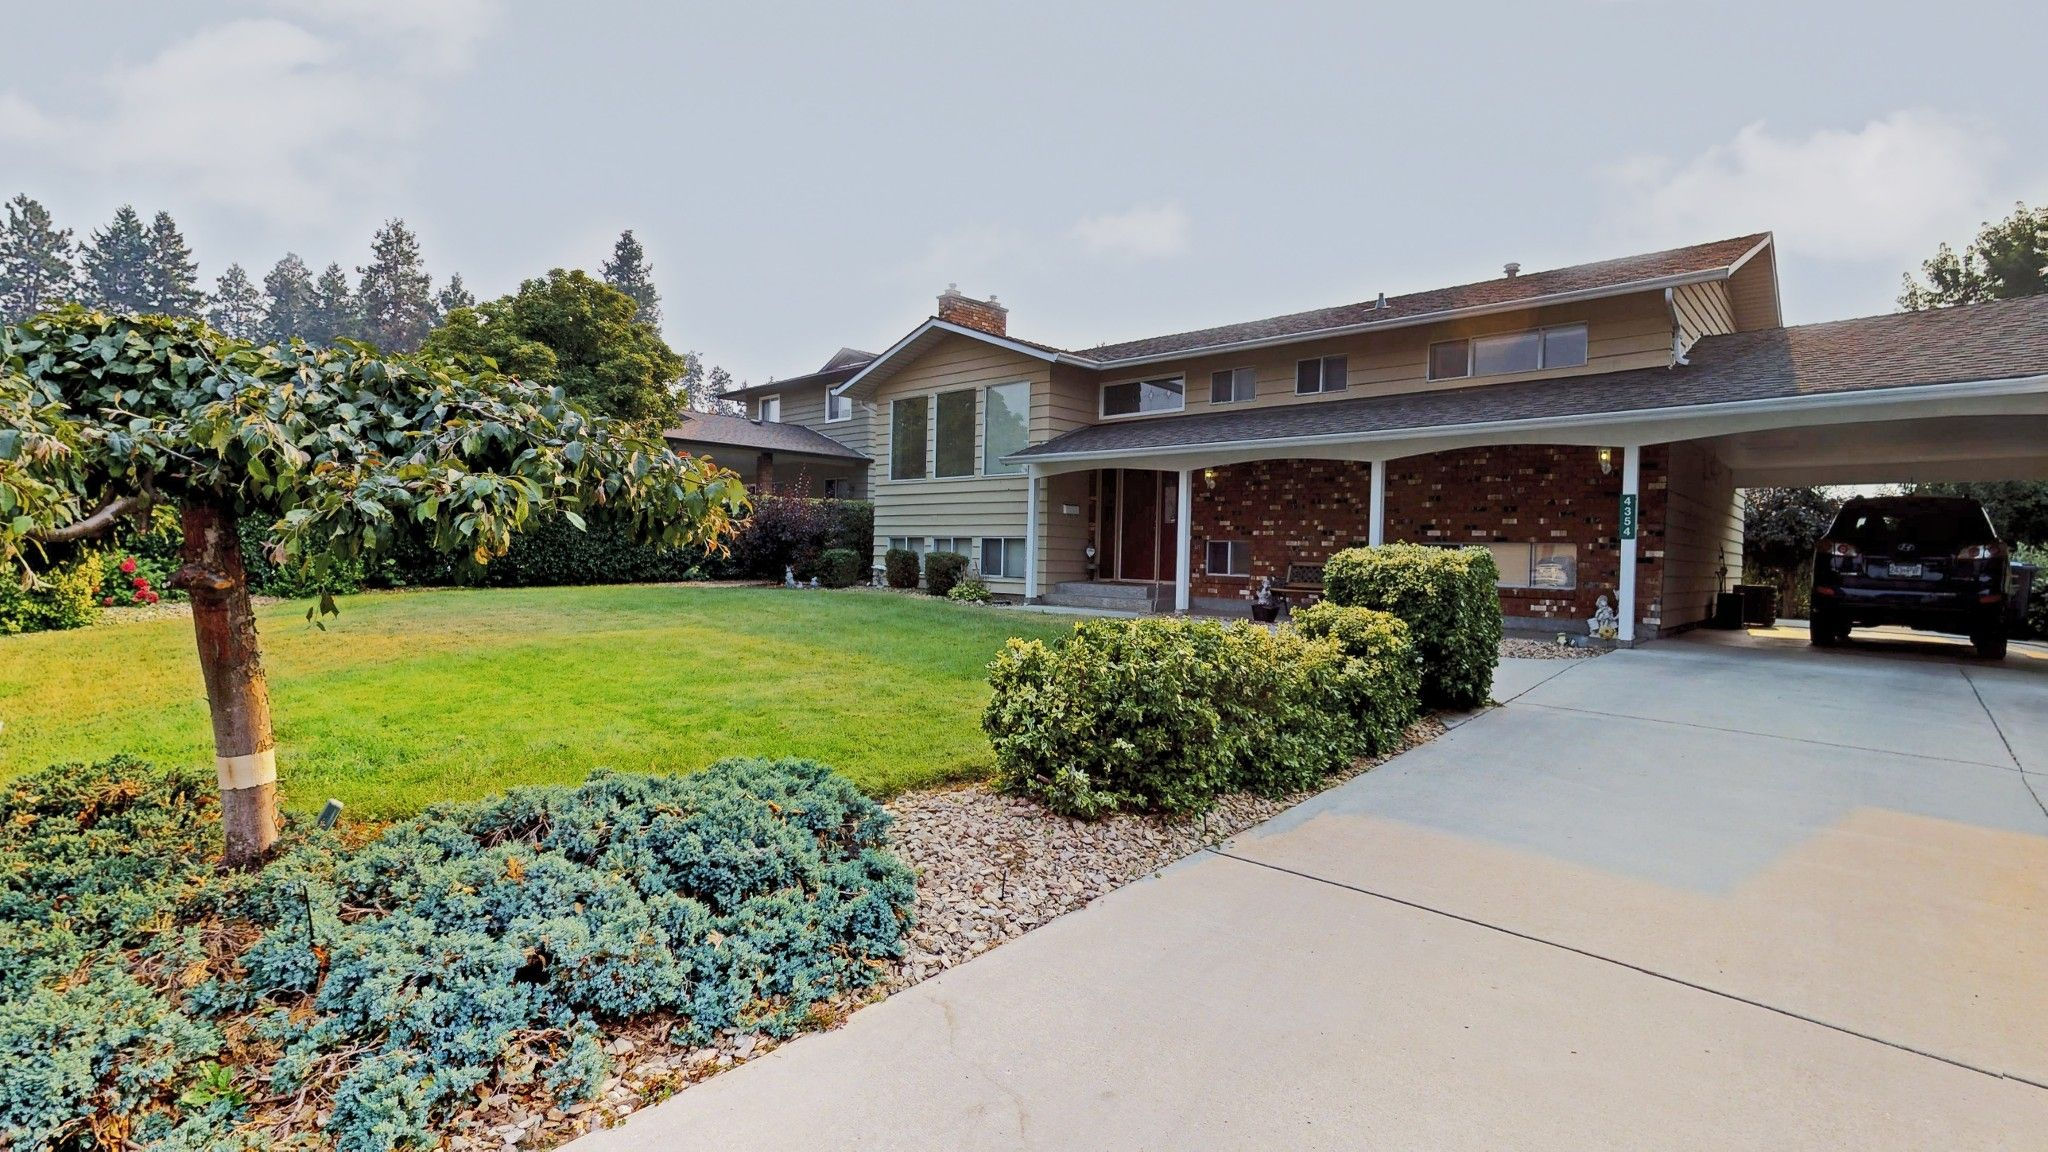 Main Photo: 4354 Kensington Drive in Kelowna: Lower Mission House for sale (Central Okanagan)  : MLS®# 10192307